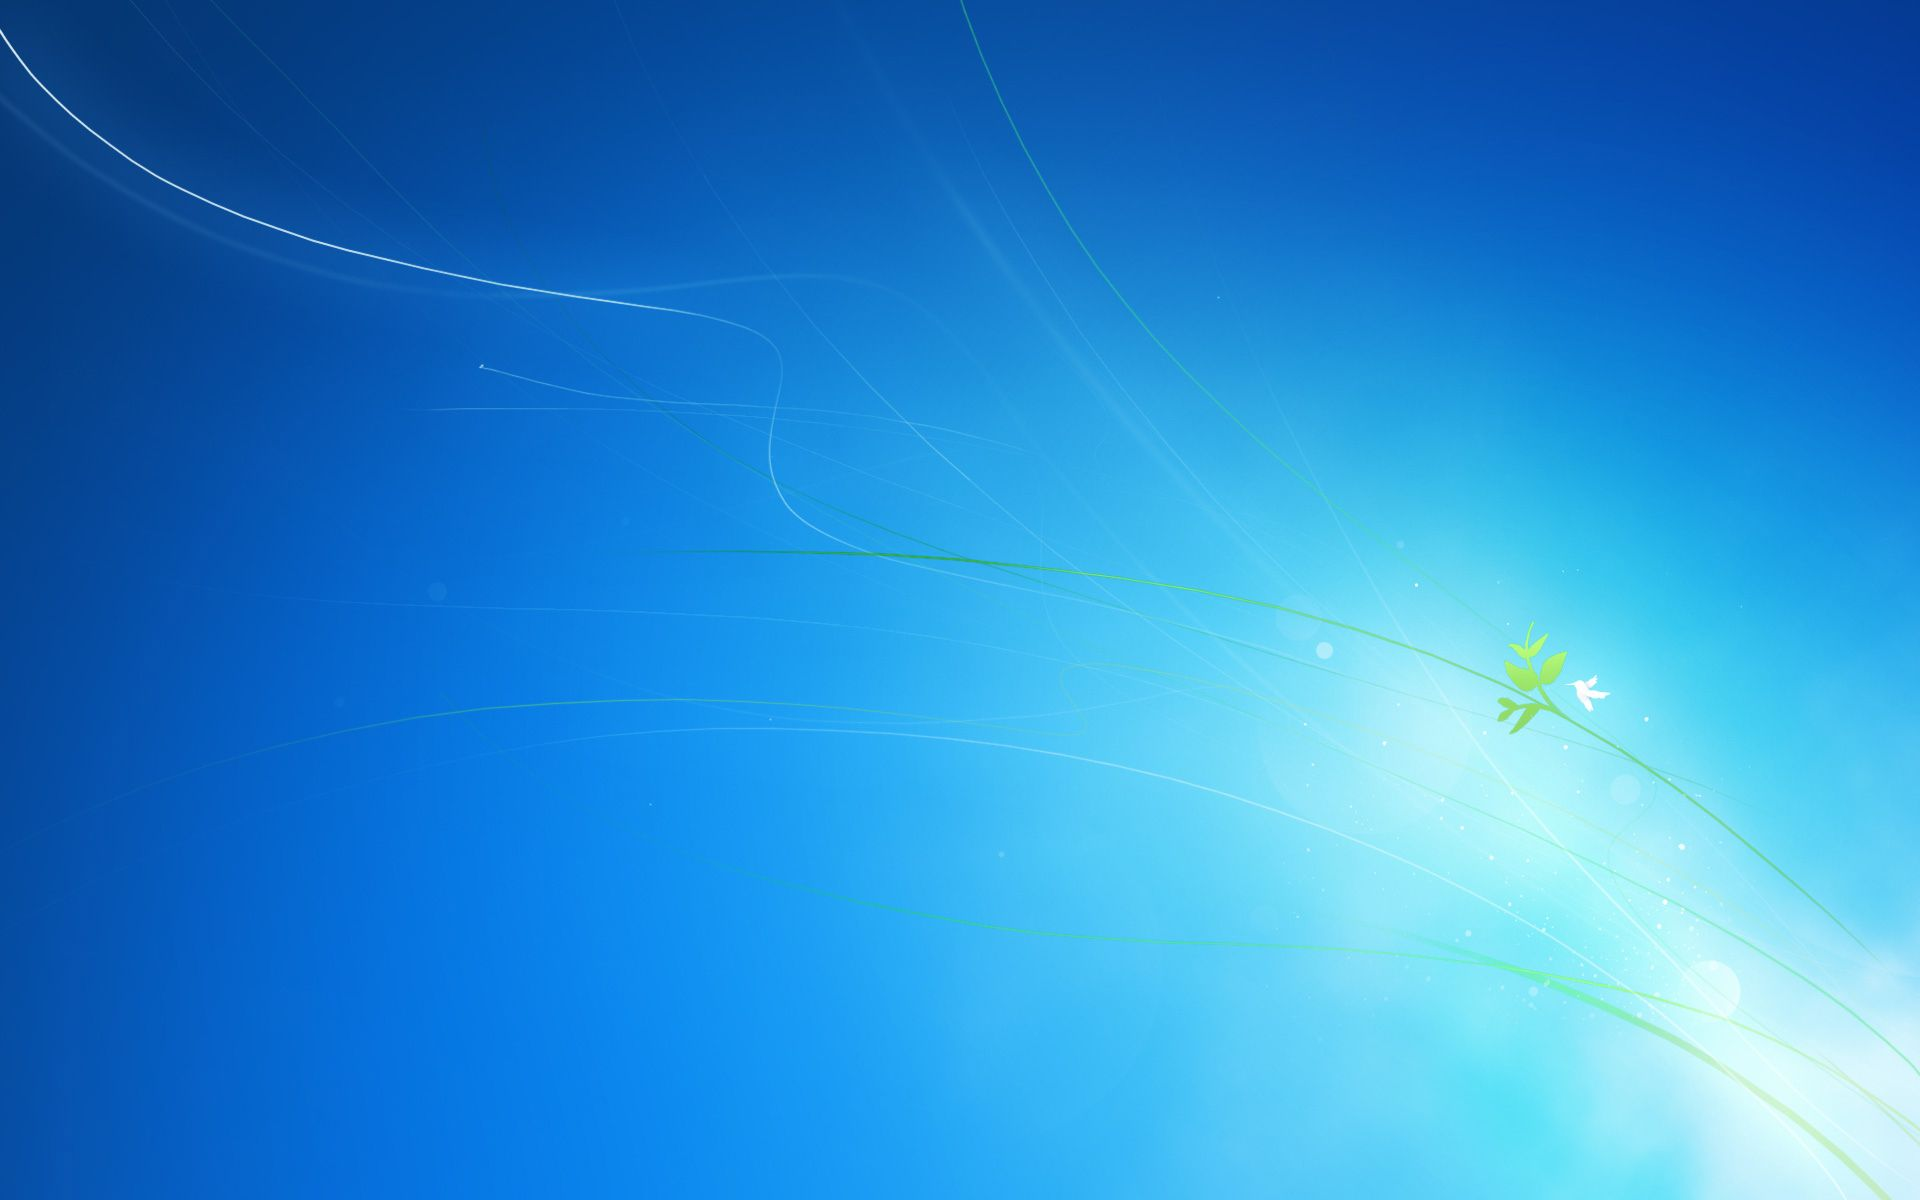 windows 7 original wallpaper hd - http://imashon/brands-logos